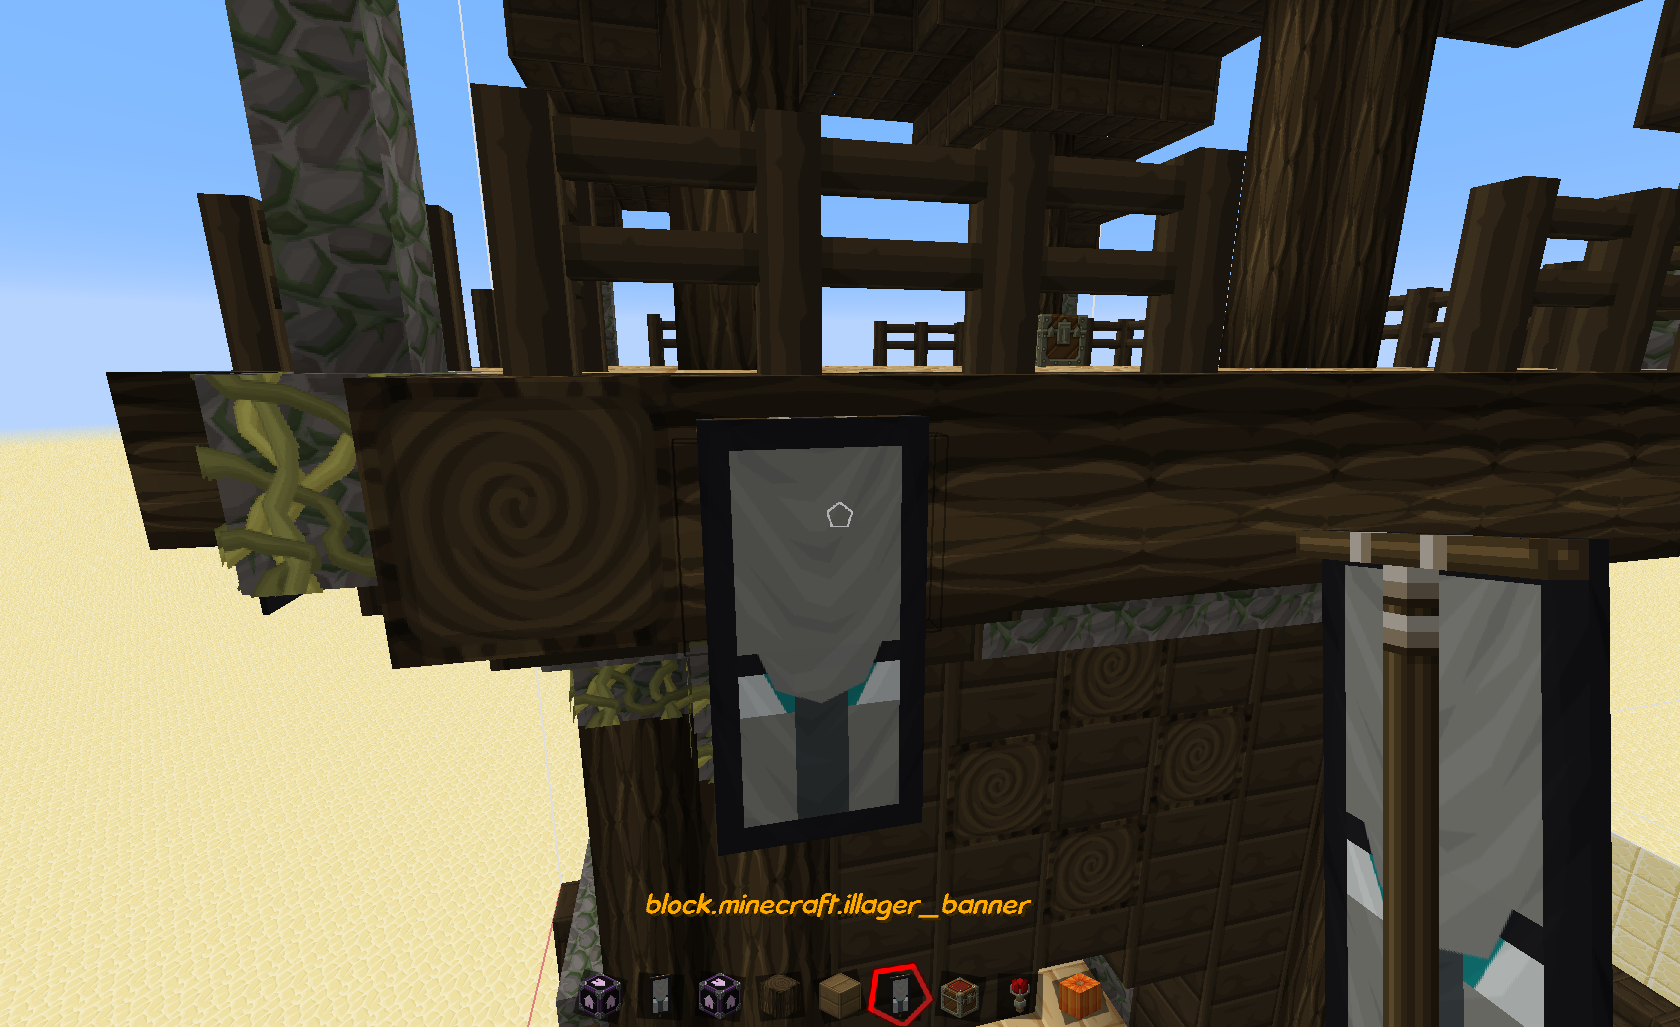 MC-149526] Pillager Outposts spawn with the old Illager Banner